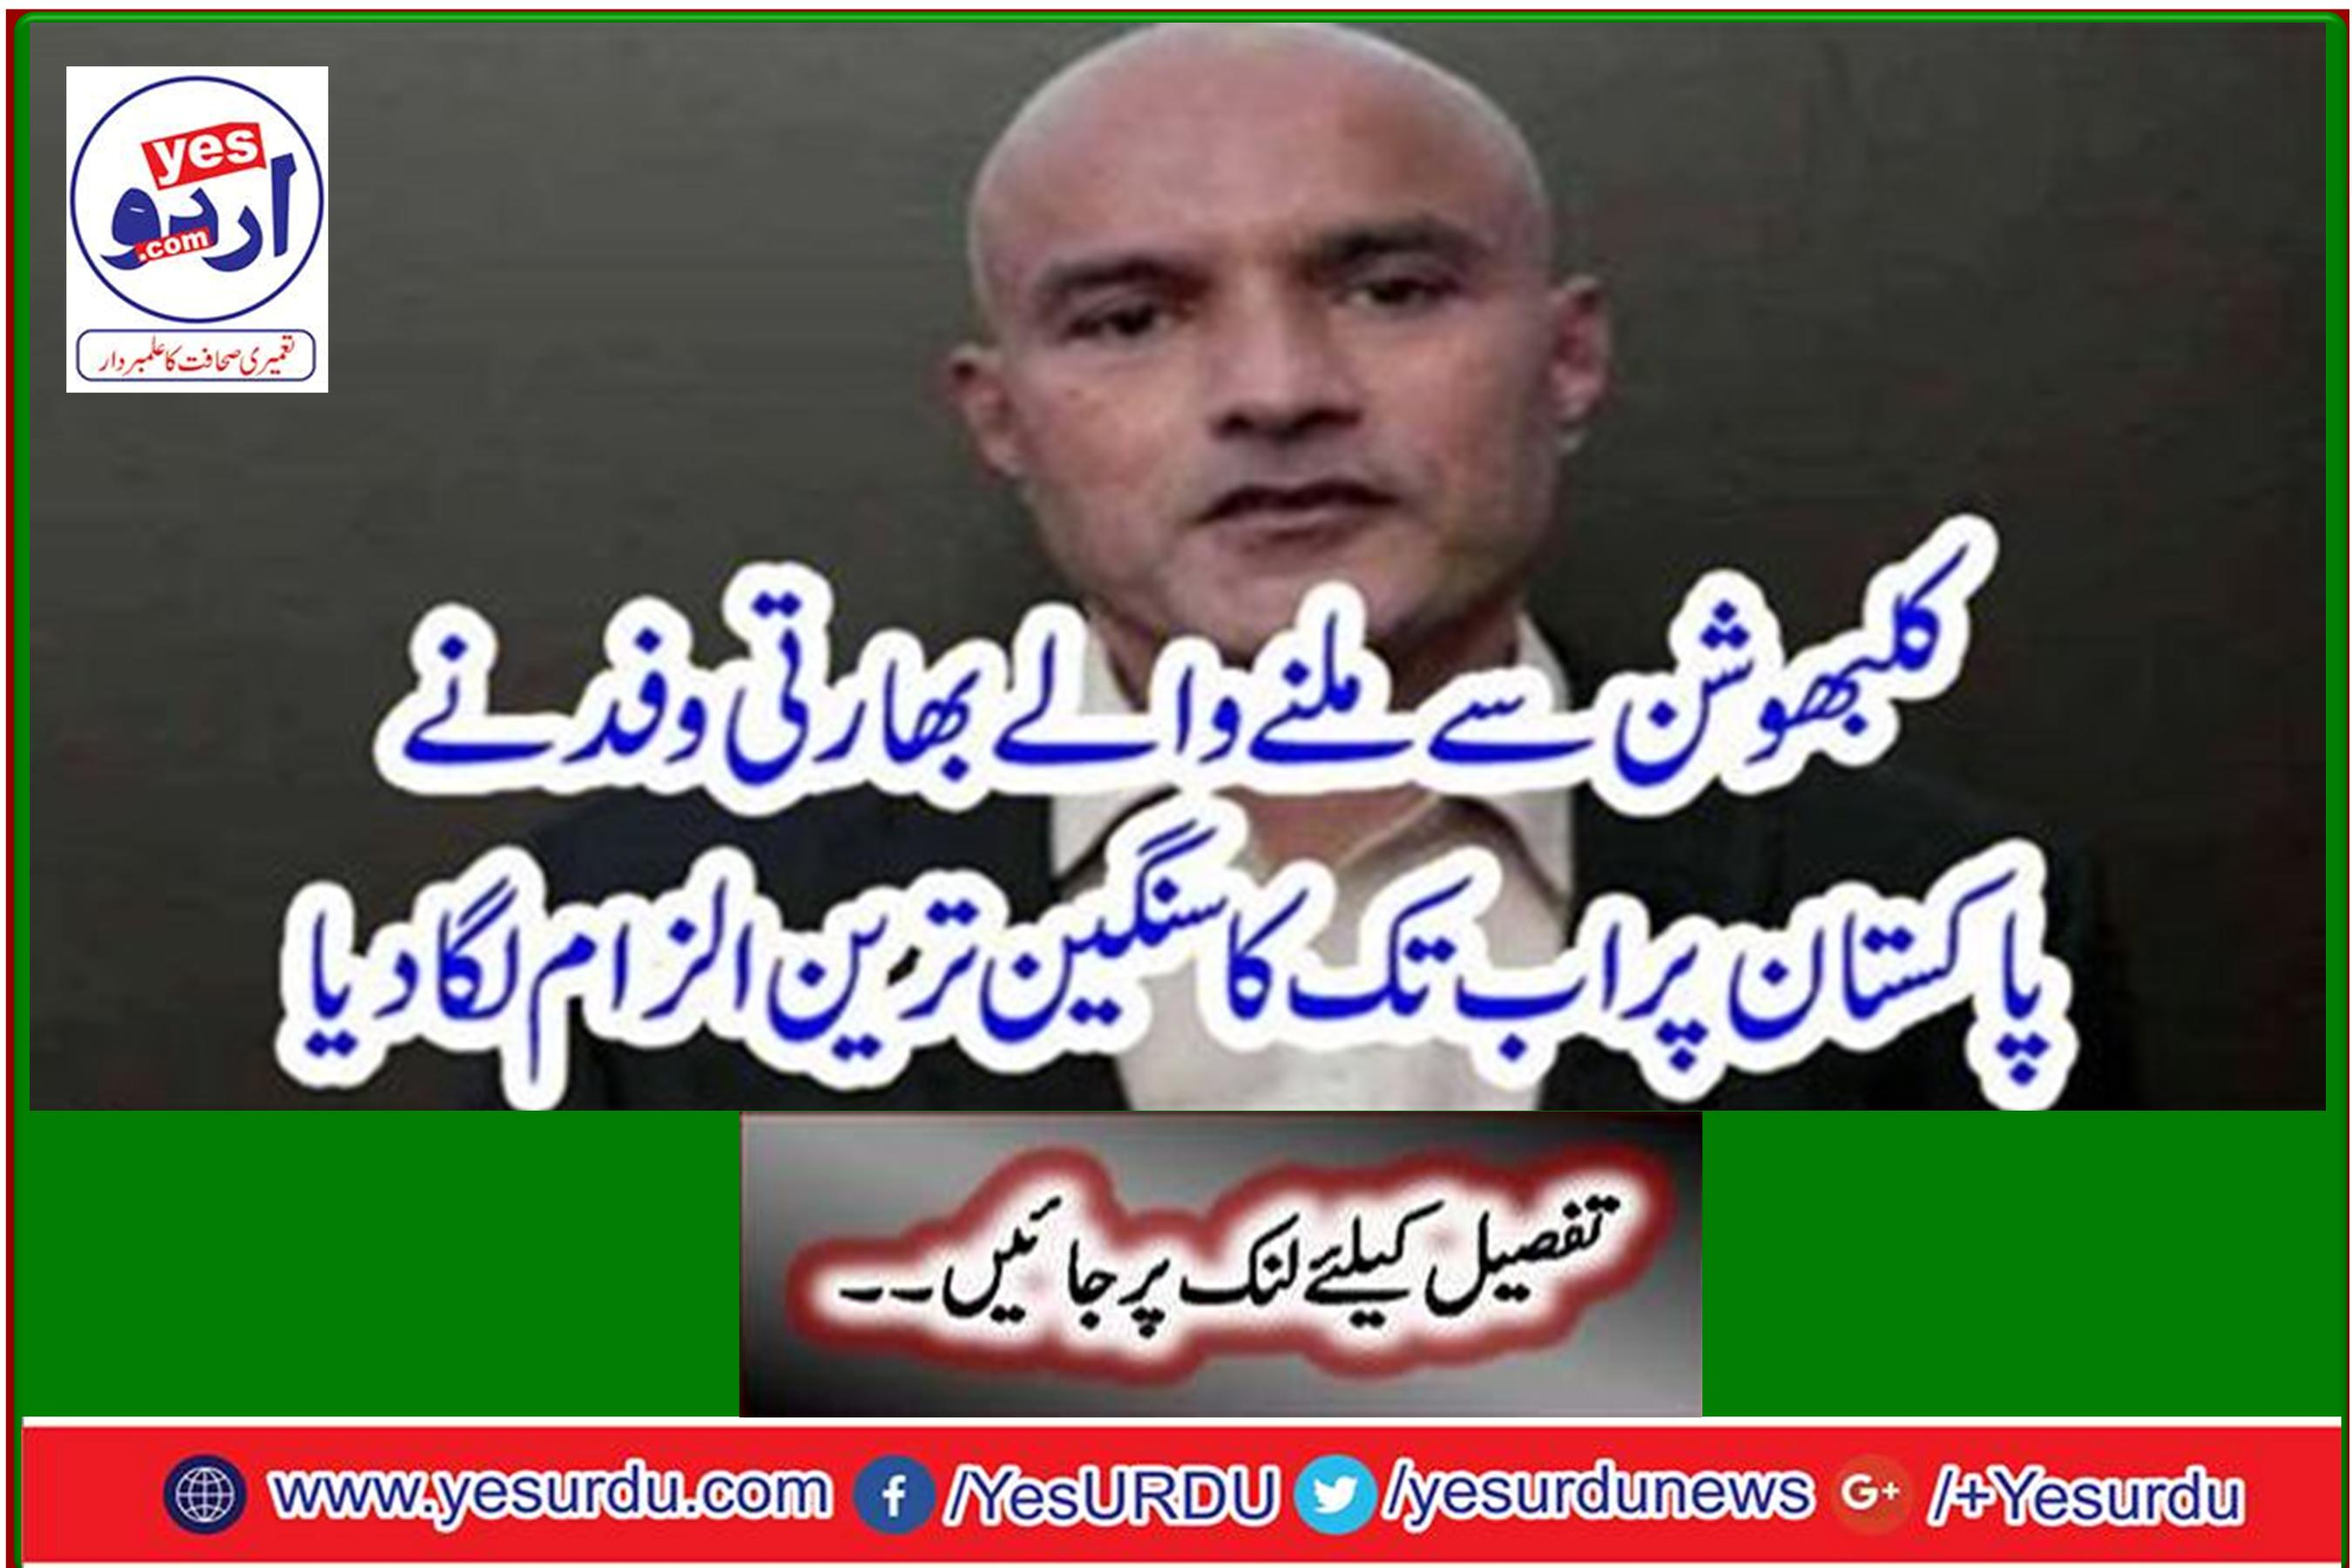 The Indian delegation from Kalbhushan has accused Pakistan of the most serious incident ever